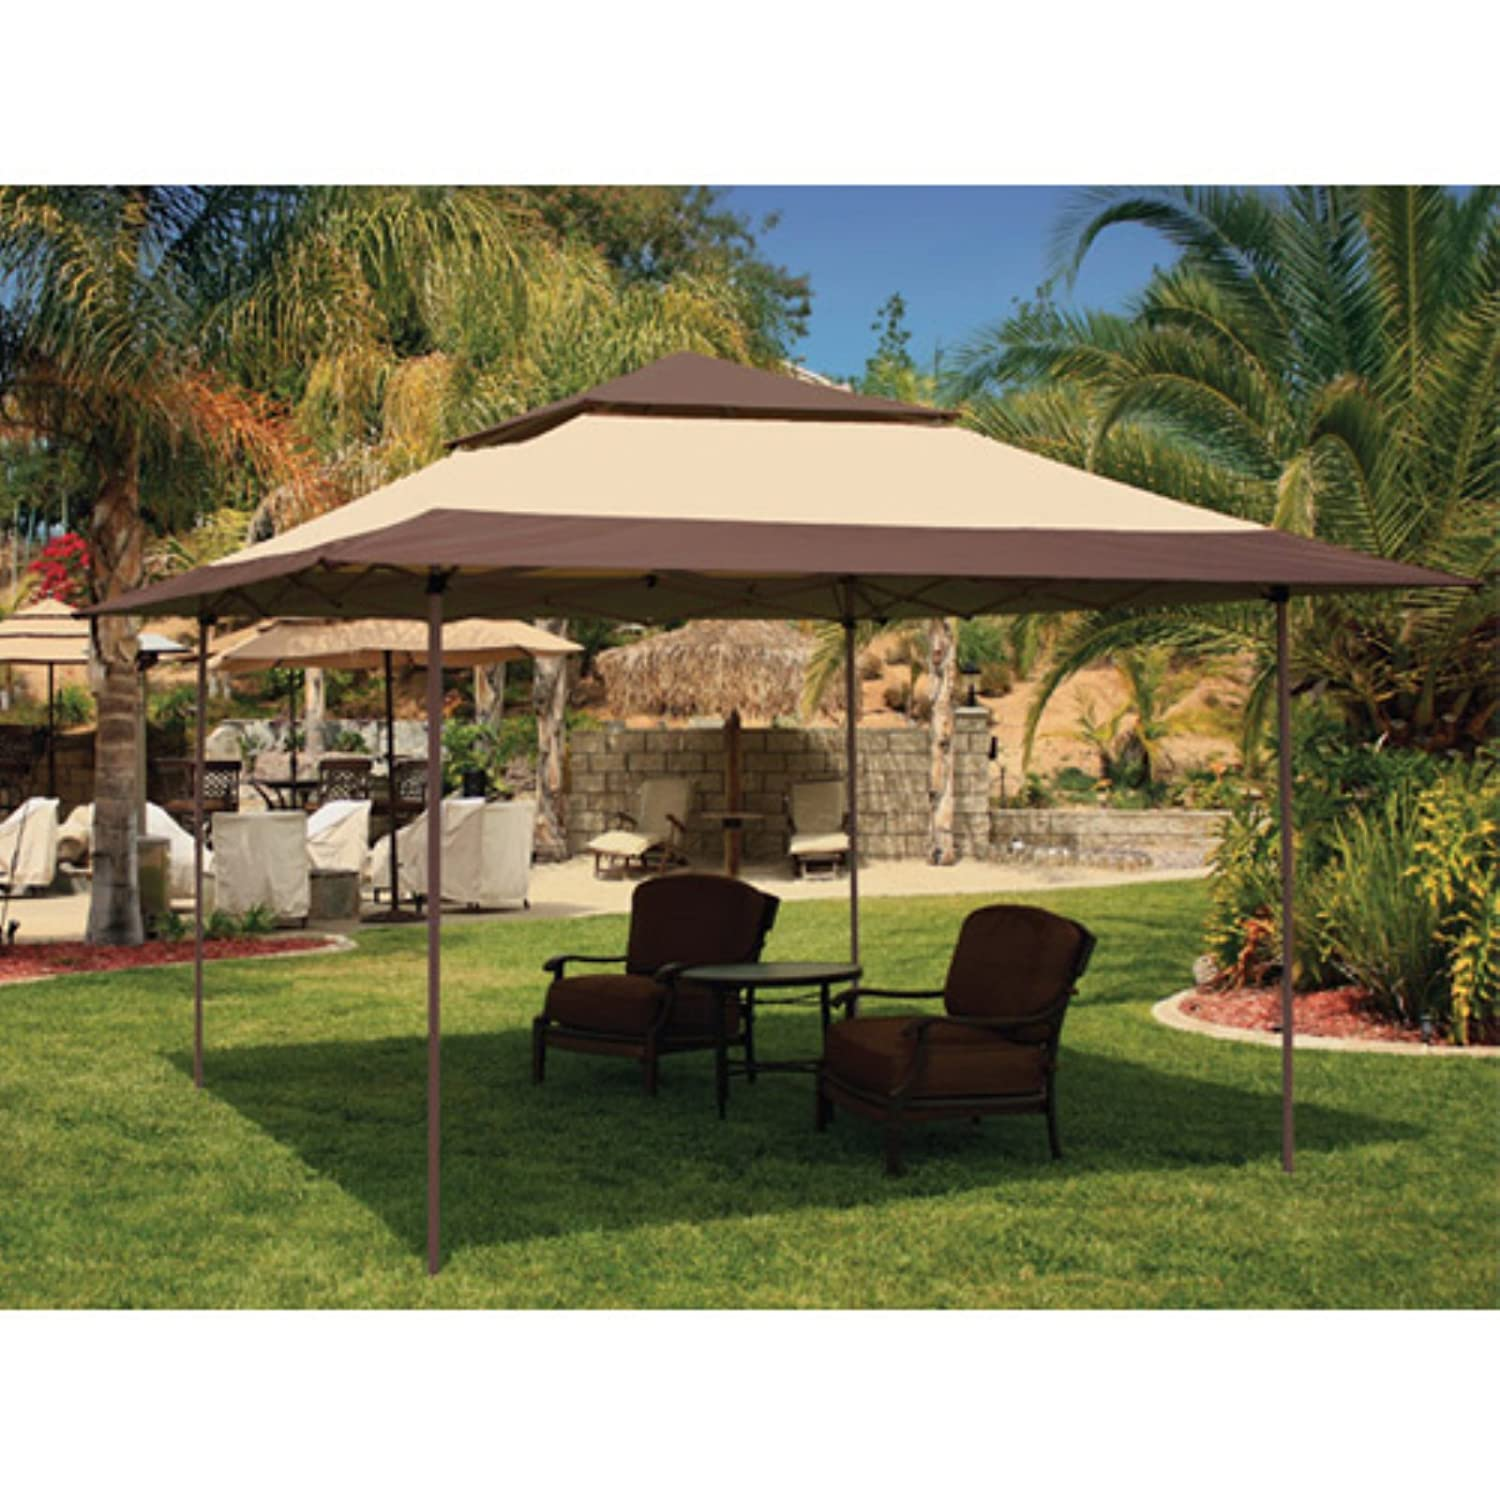 amazon com e z up 13 x 13 pagoda gazebo canopy outdoor